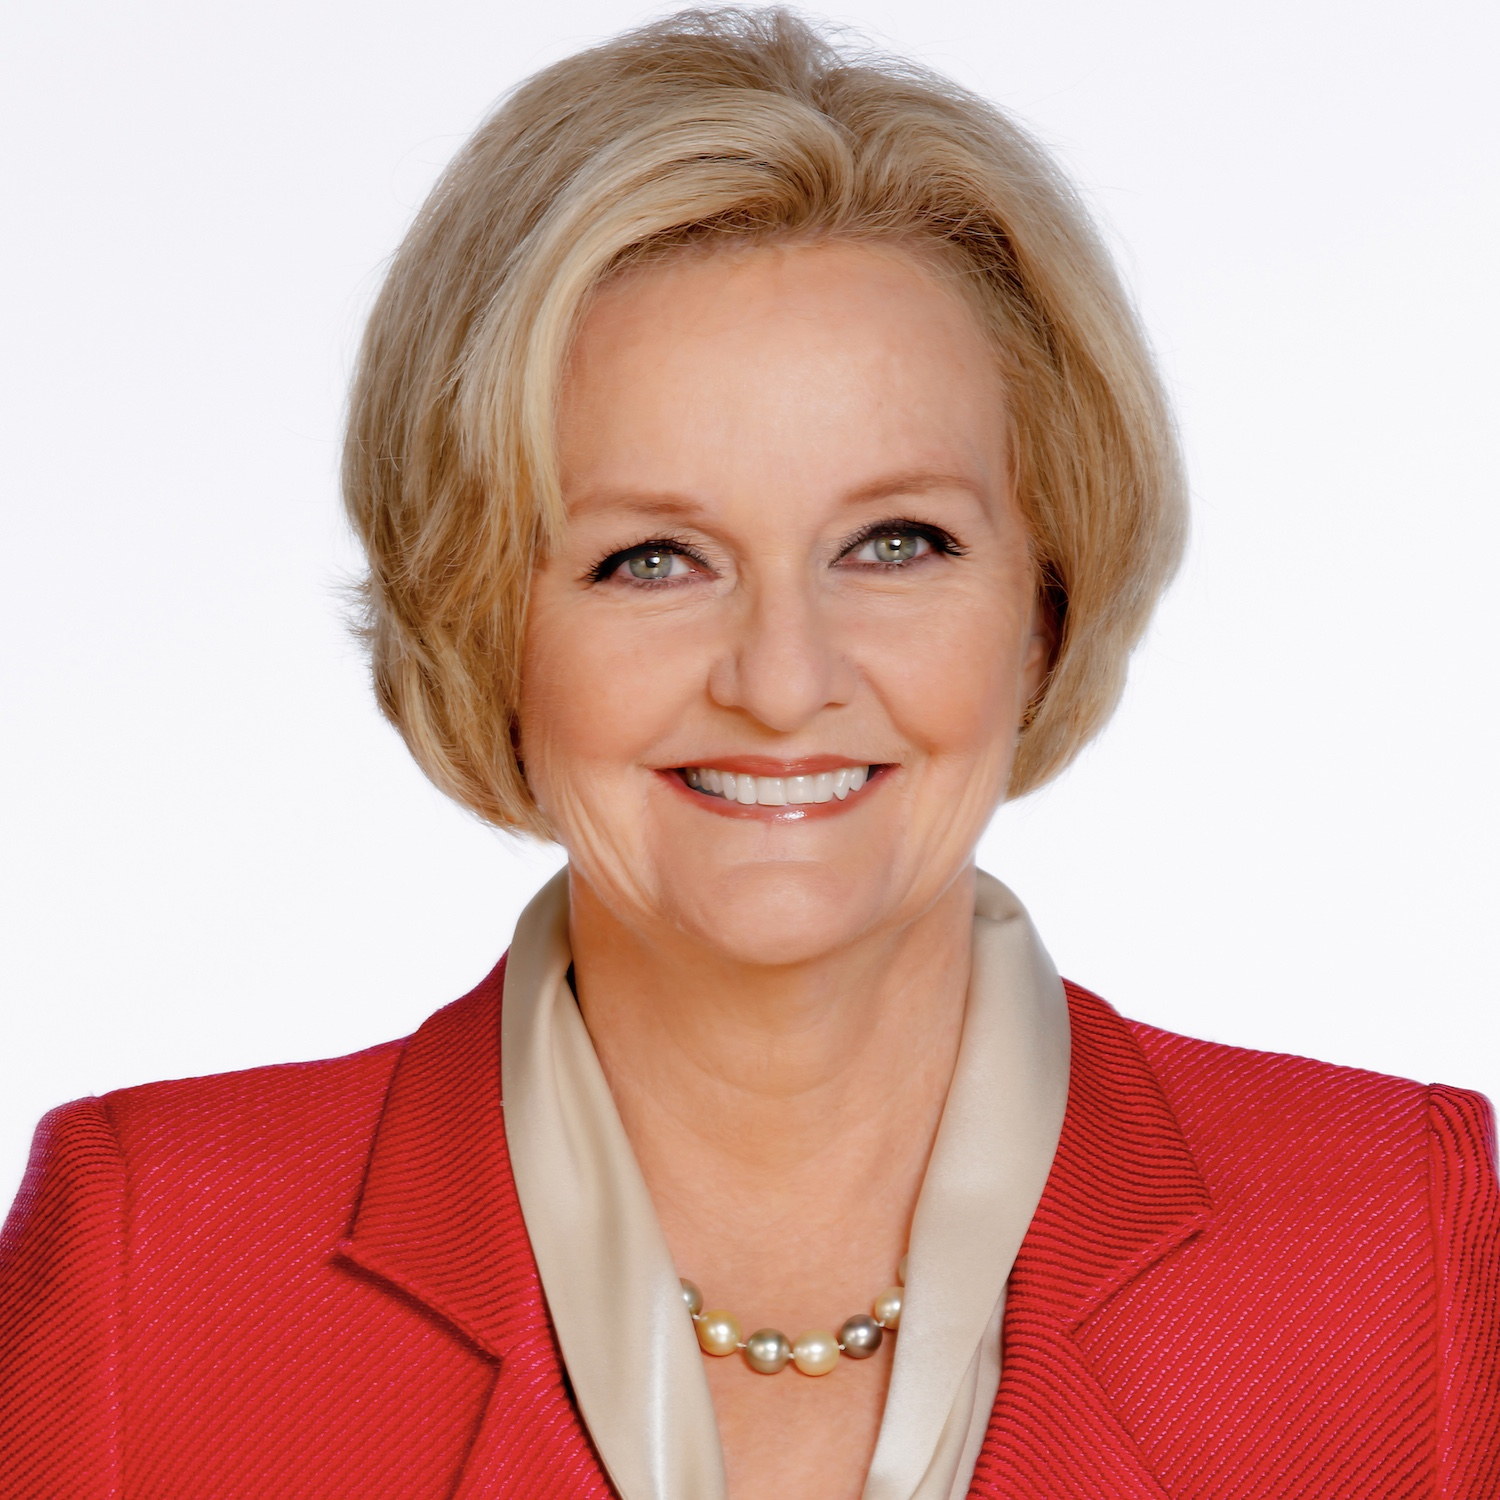 Is Sen. Claire McCaskill Racist for Attempting to Strip Native American Tribes of Sovereign Immunity?